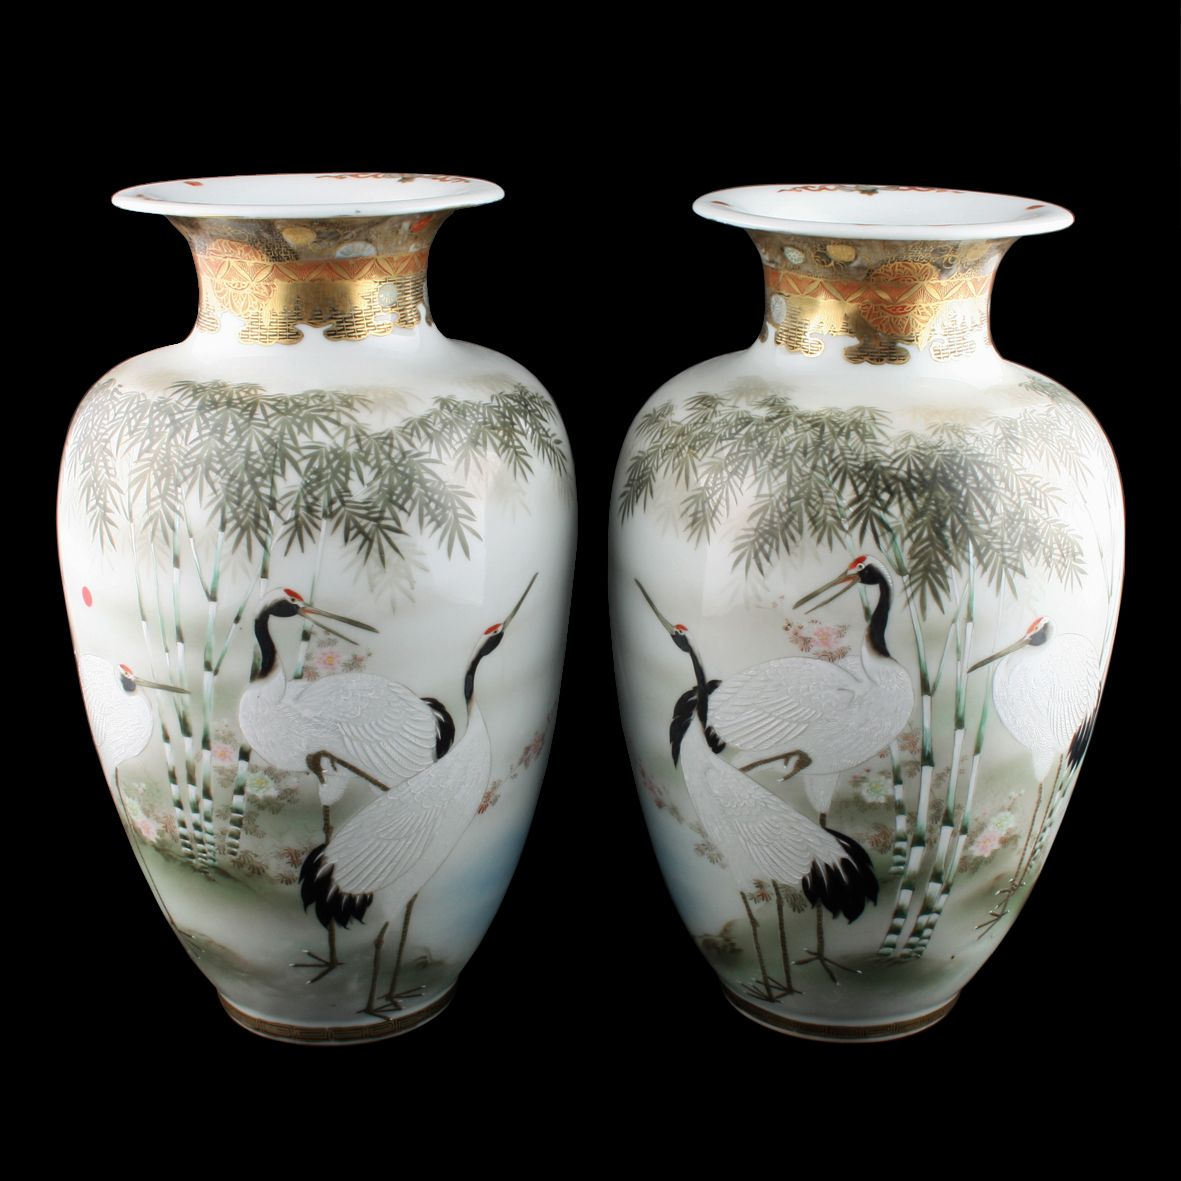 Large Pair of Japanese Kutani Vases